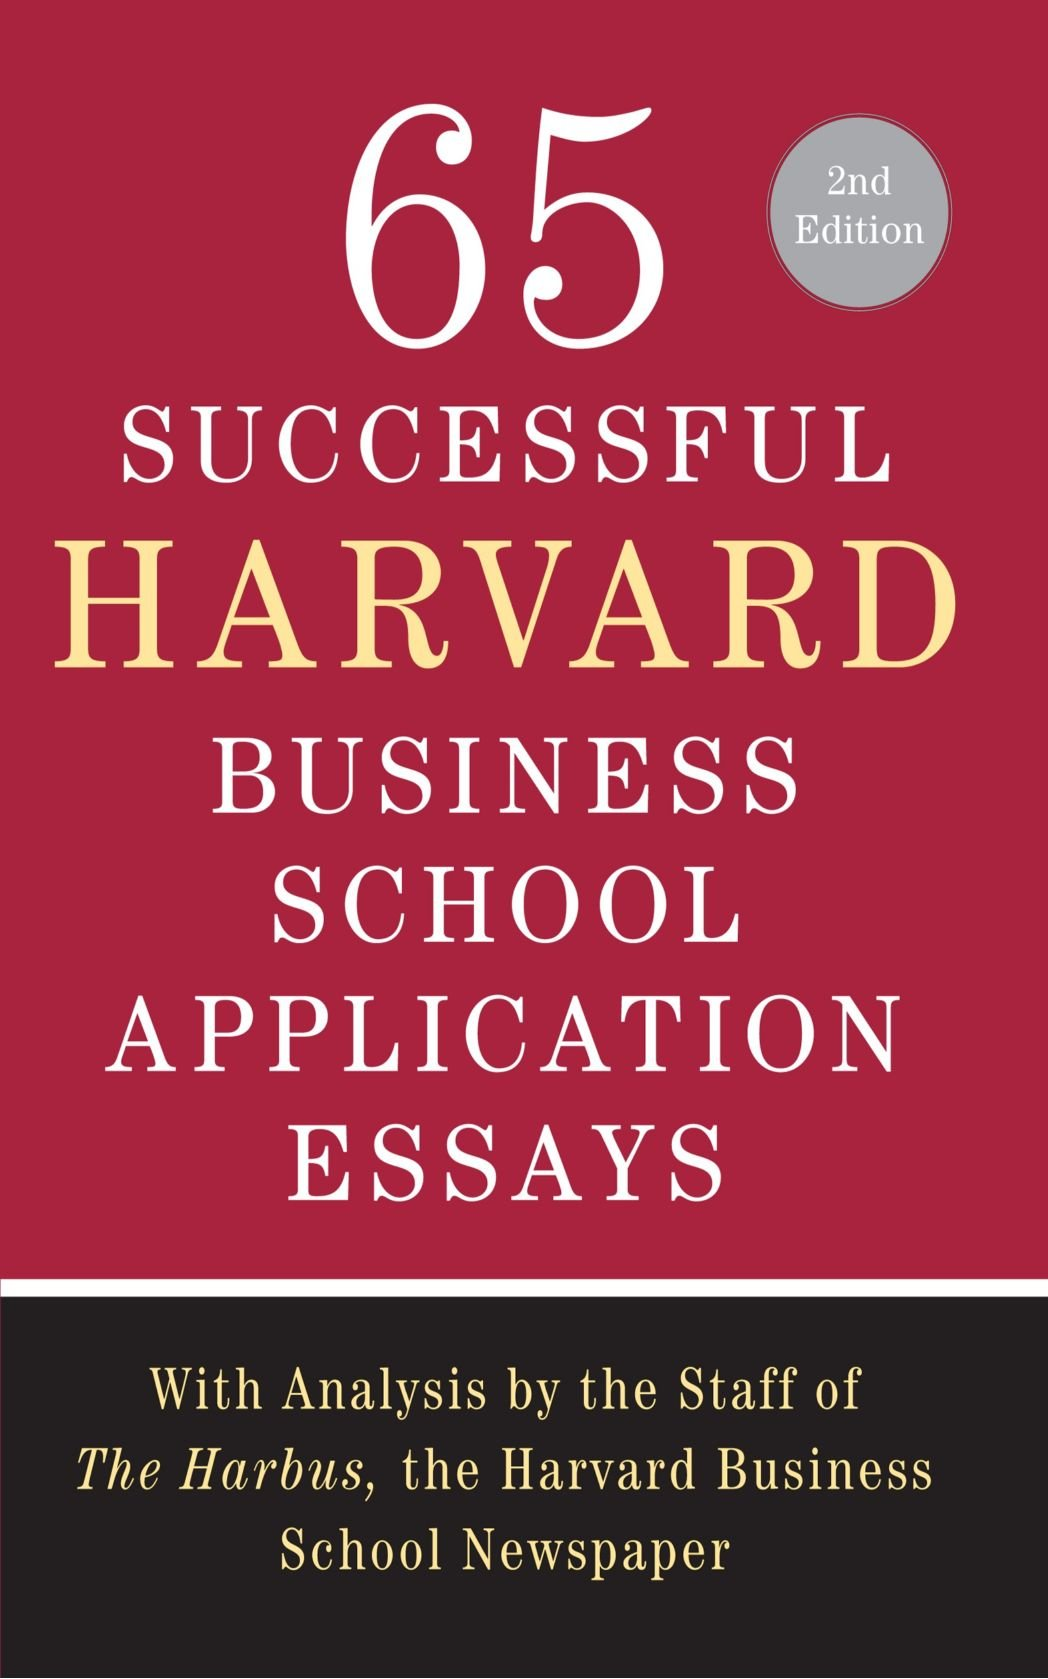 buy successful harvard business school application essays book buy 65 successful harvard business school application essays book online at low prices in 65 successful harvard business school application essays